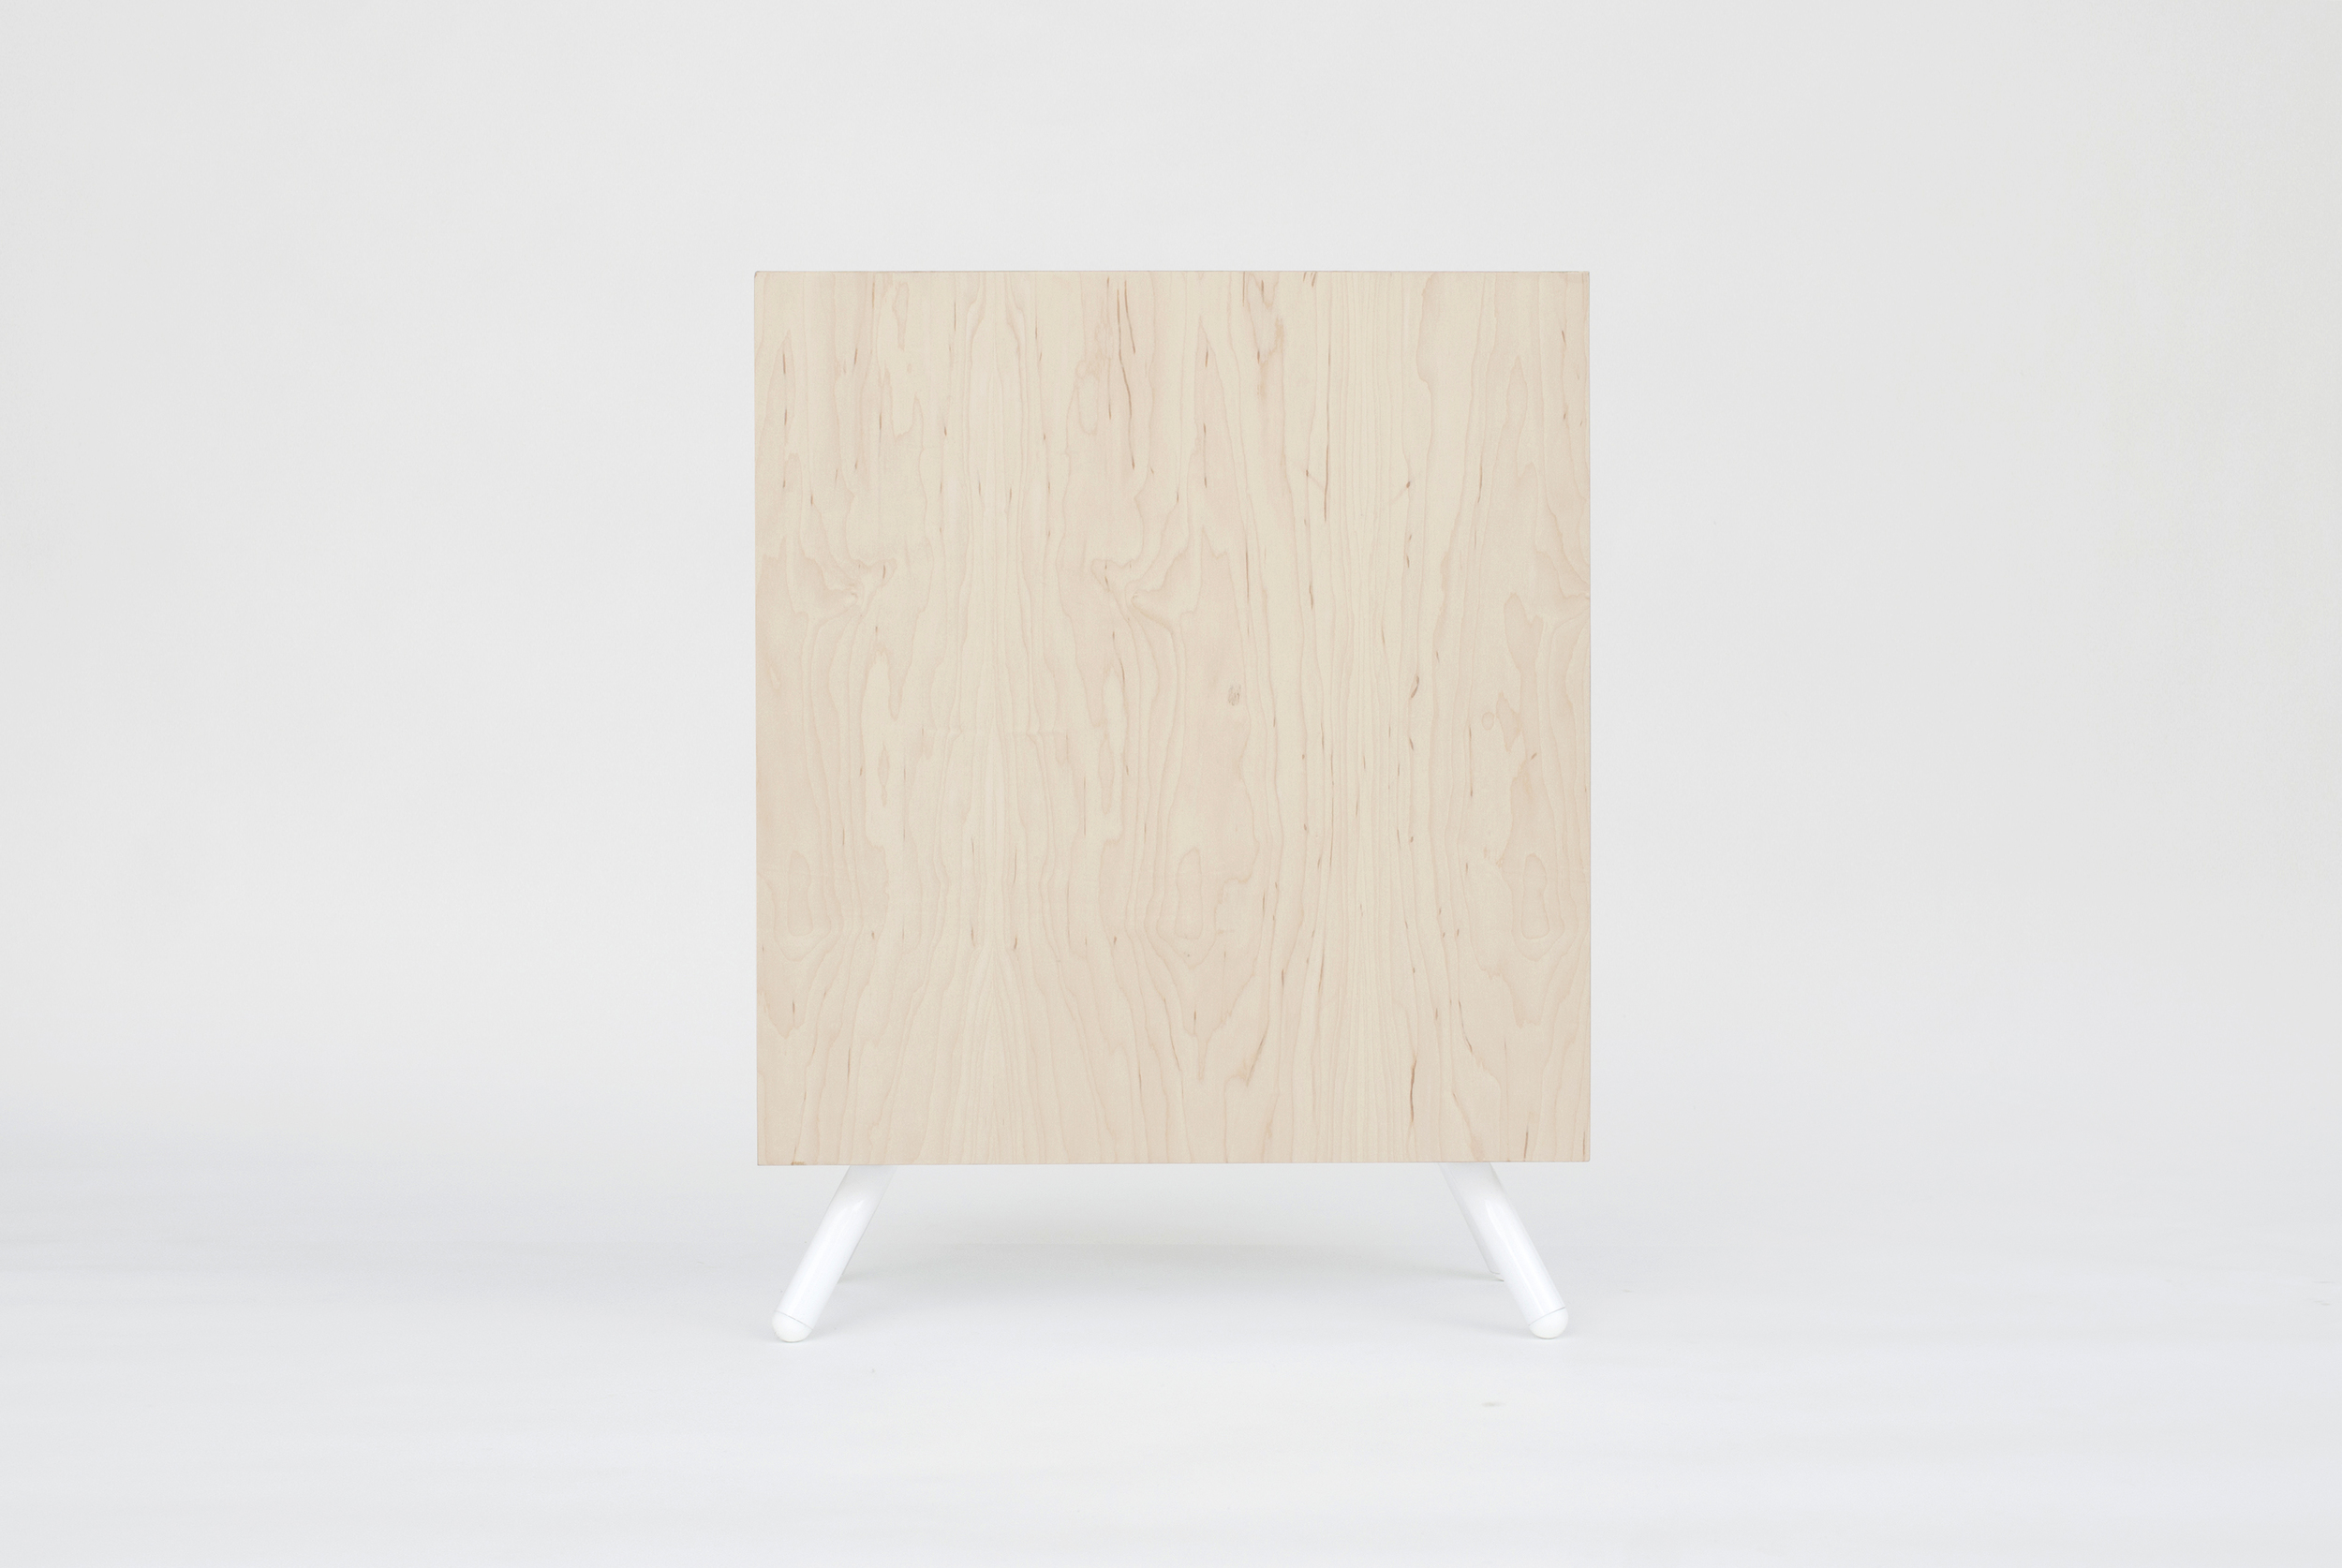 Square Side Table (2014)